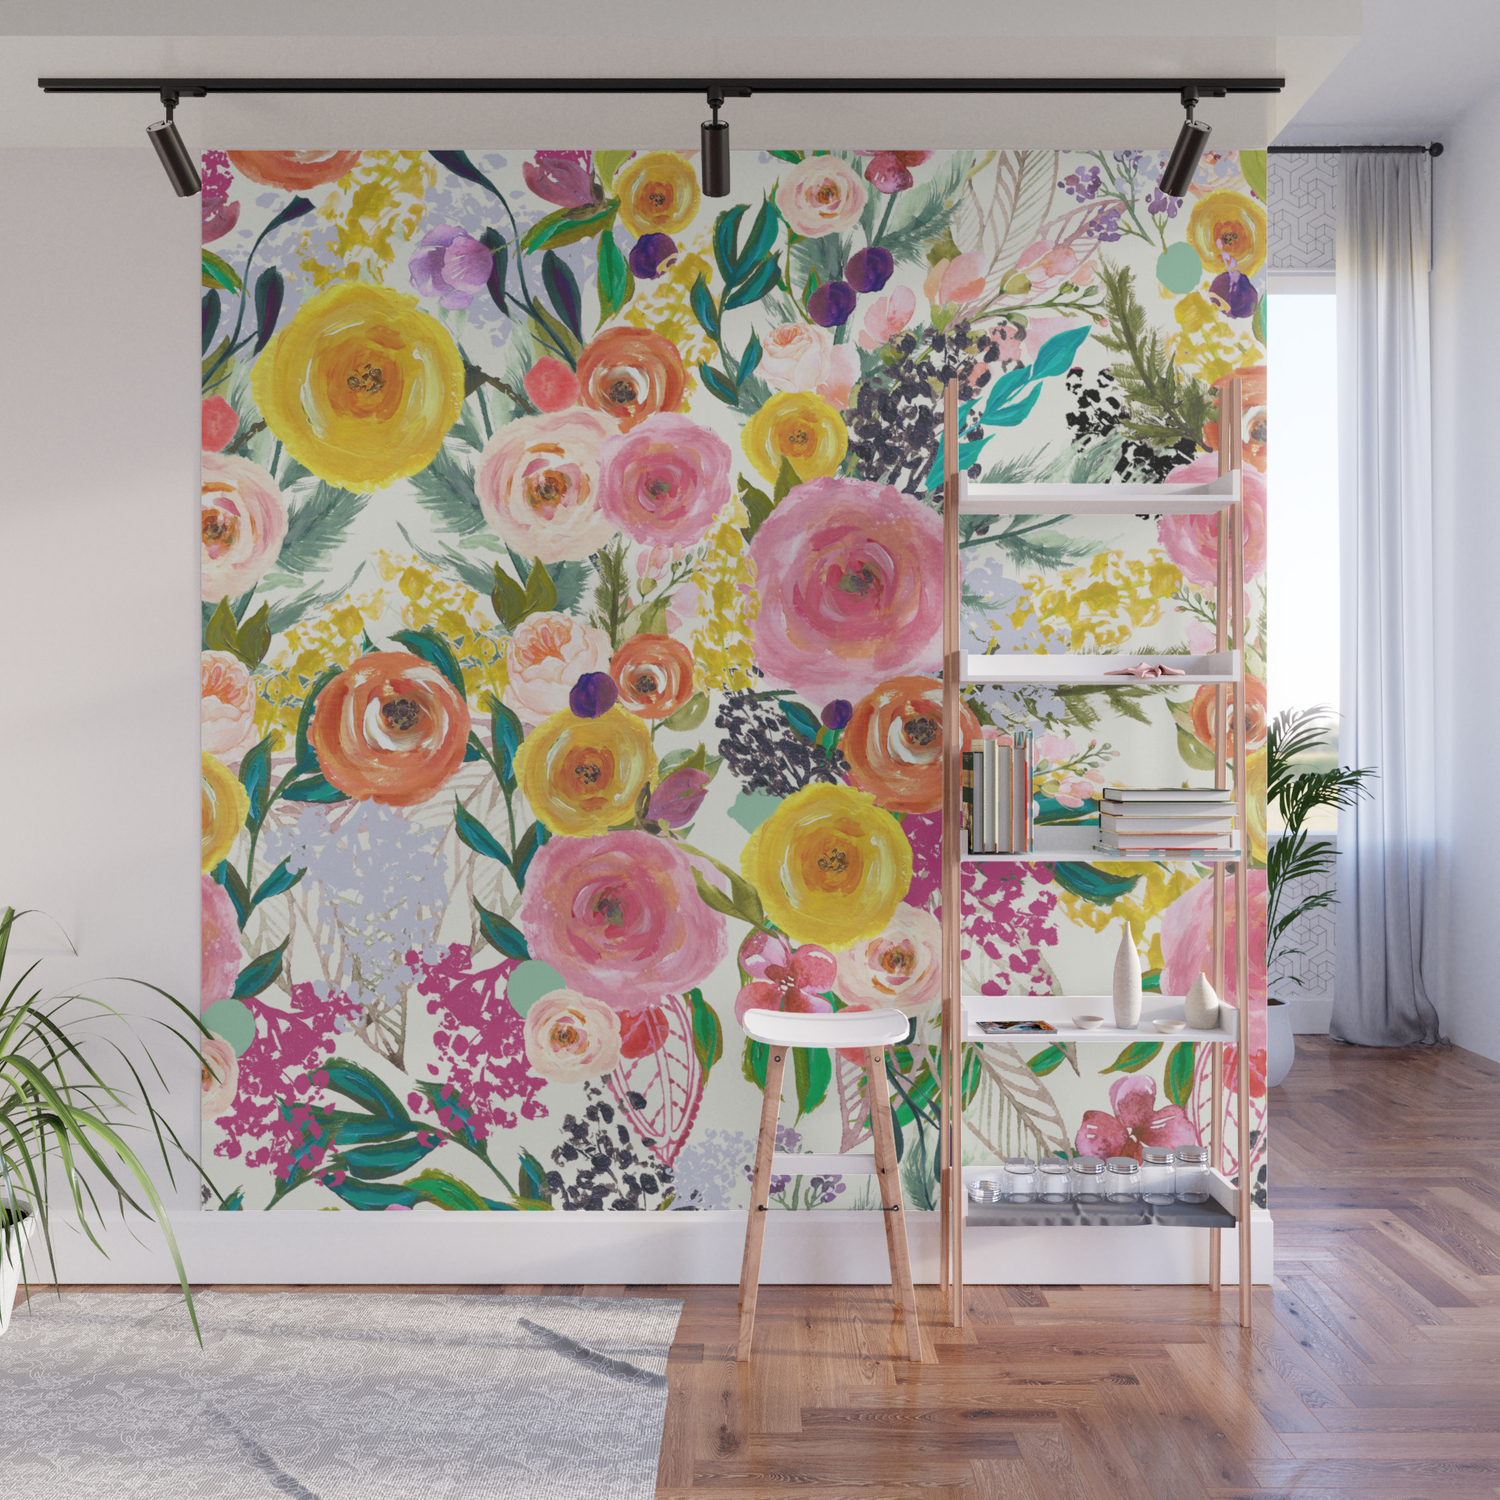 Autumn Blooms Colorful Painted Floral Print Wall Mural By Melissapolomsky Society6